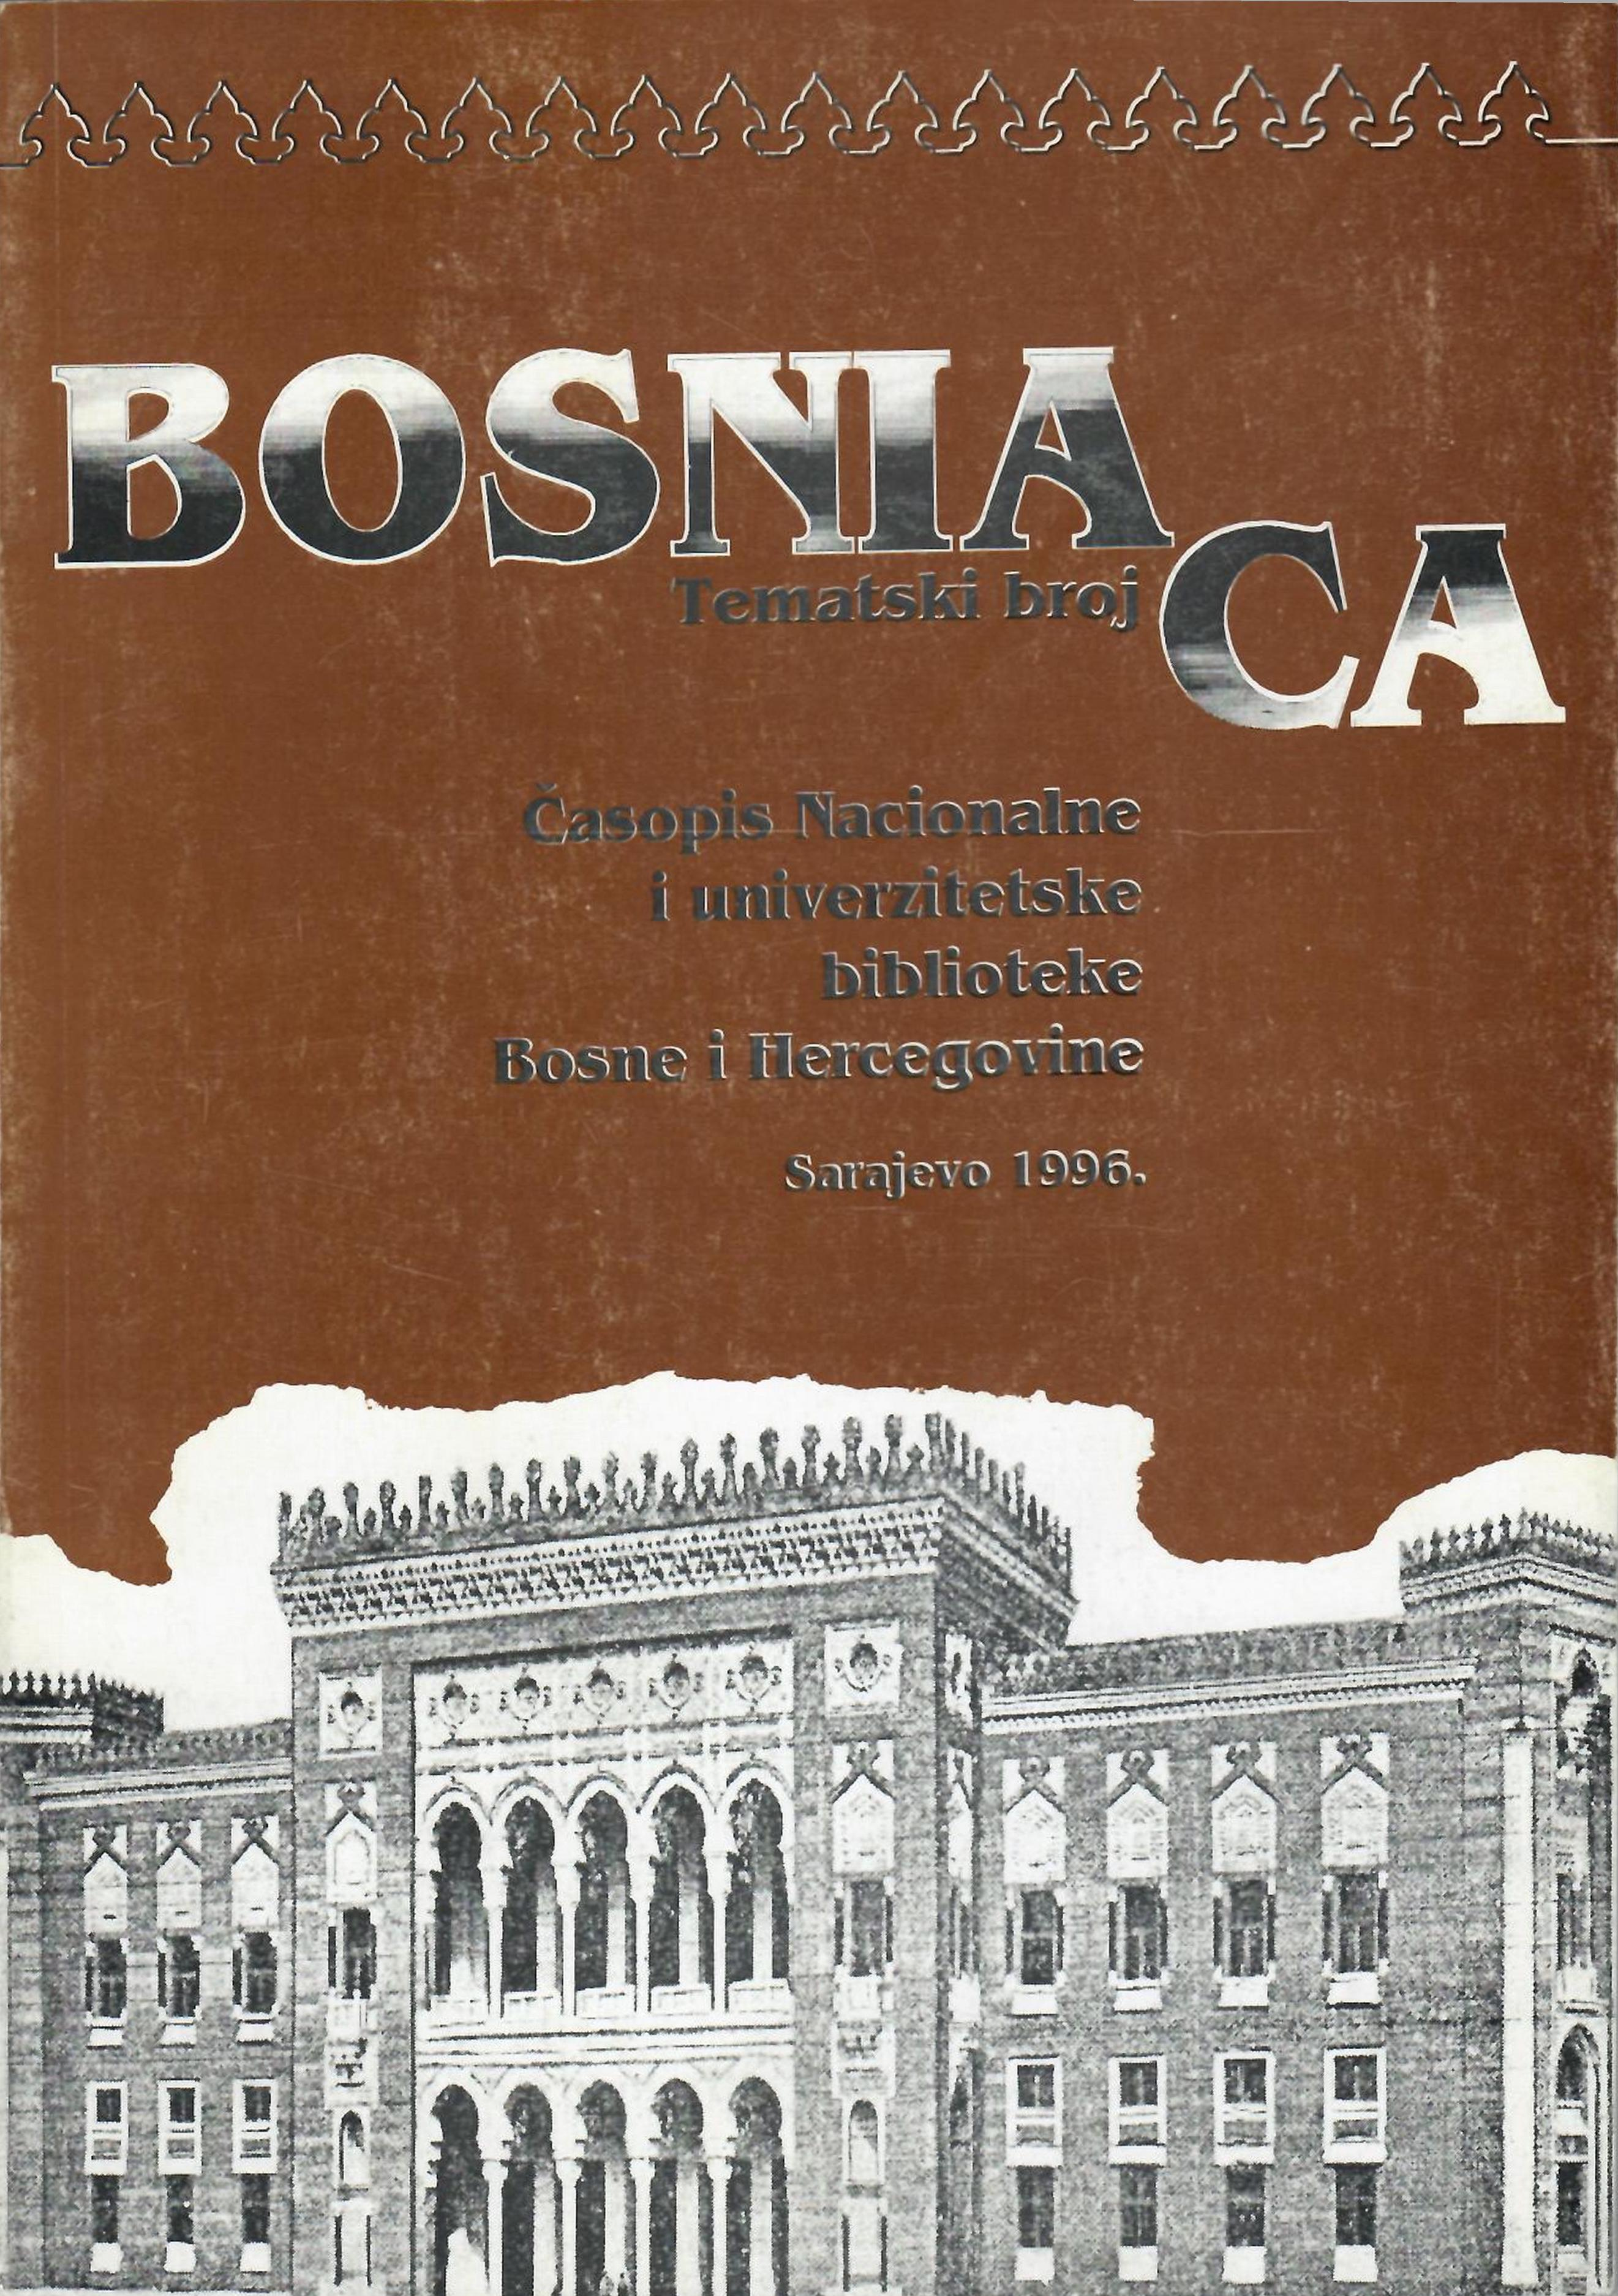 BOSNIACA - Journal of the National and University Library of Bosnia and Herzegovina Cover Image